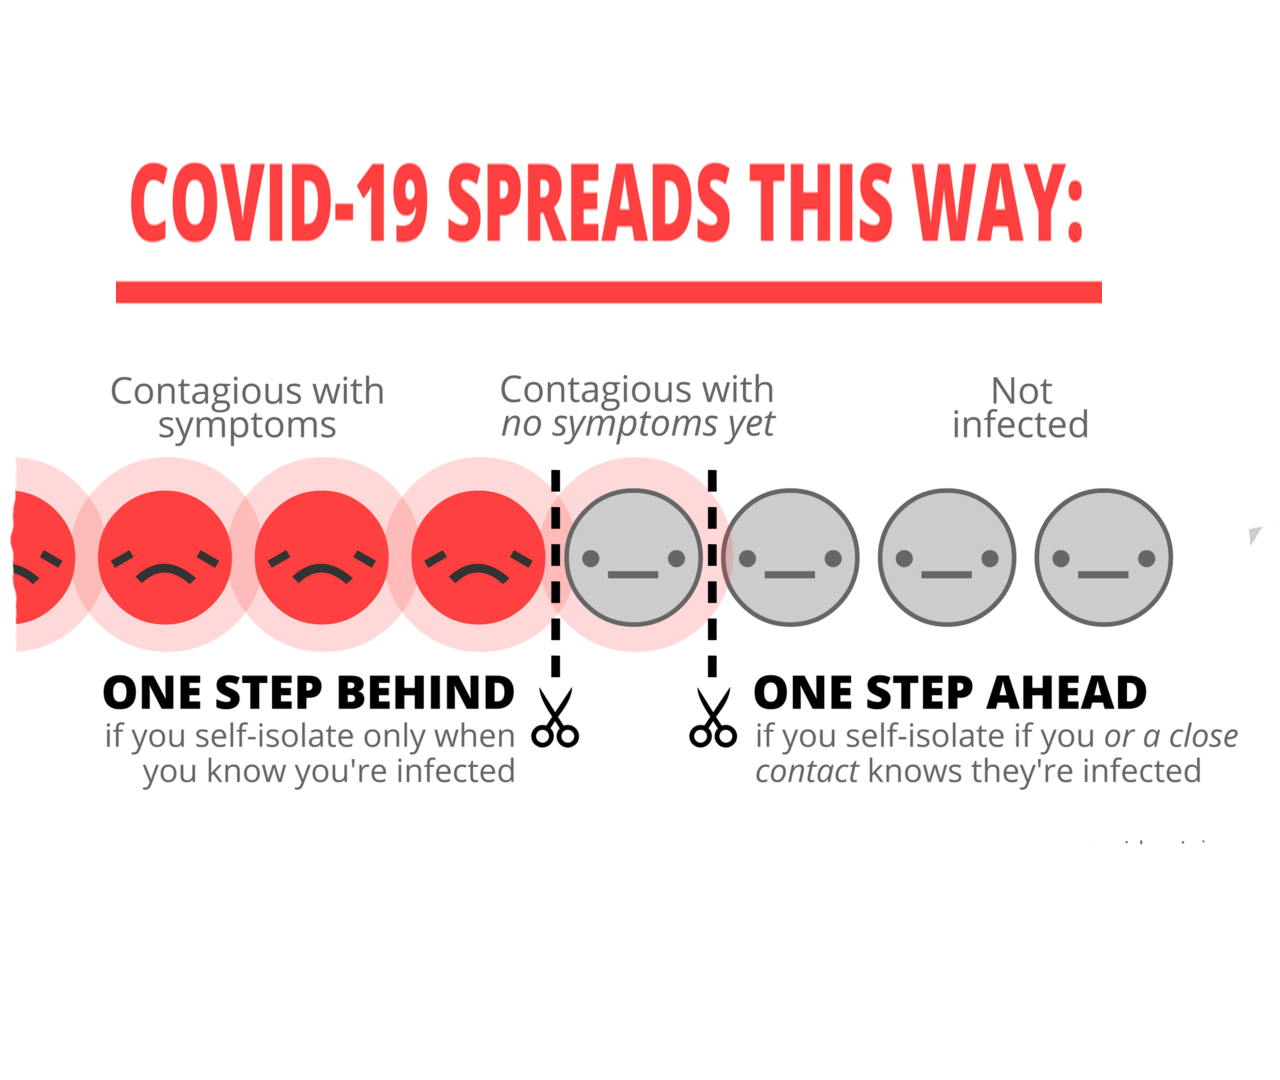 What we need to understand about asymptomatic carriers if we're going to beat coronavirus